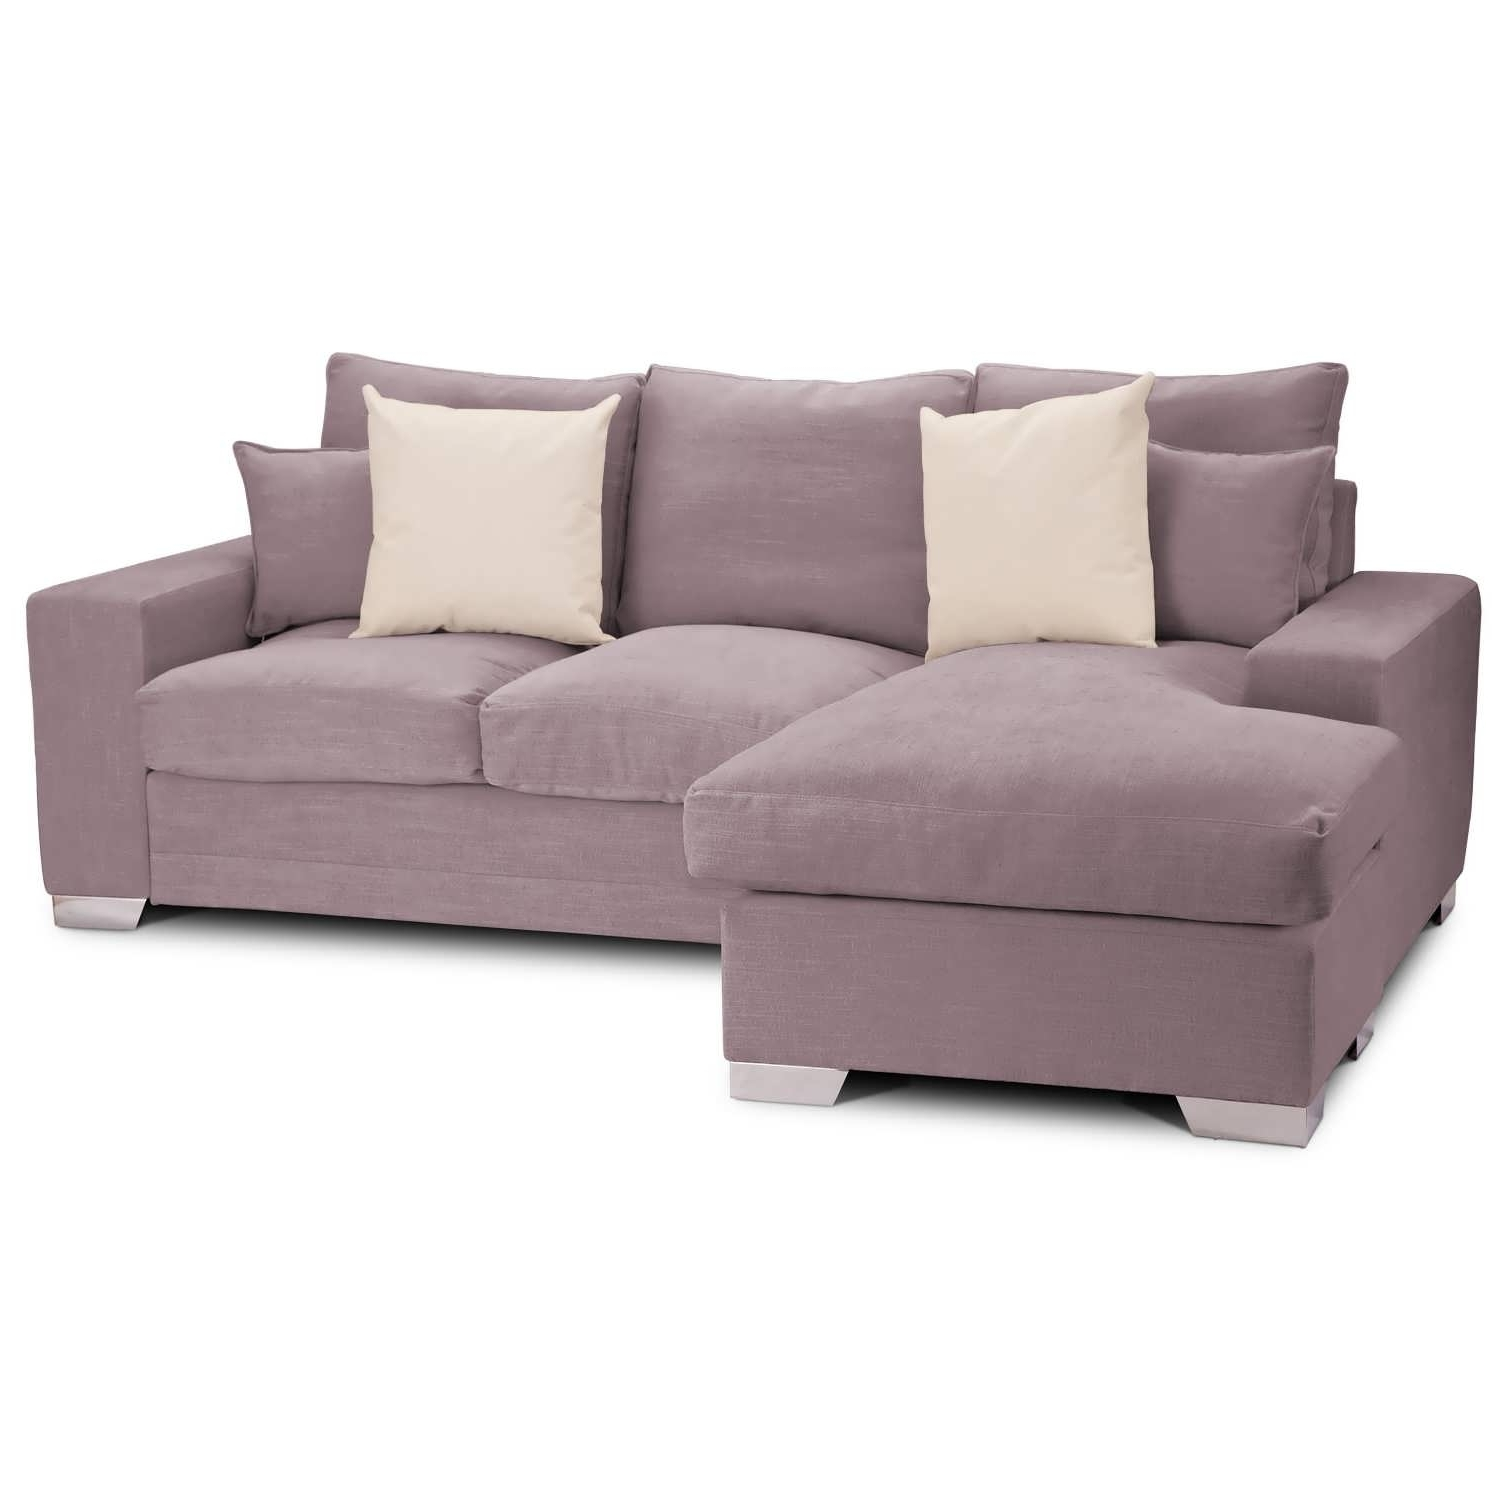 Widely Used Sofa : Gray Sofa Set Sectional Sofas Small Chaise Sofa Gray Within Chaise Couches (View 15 of 15)